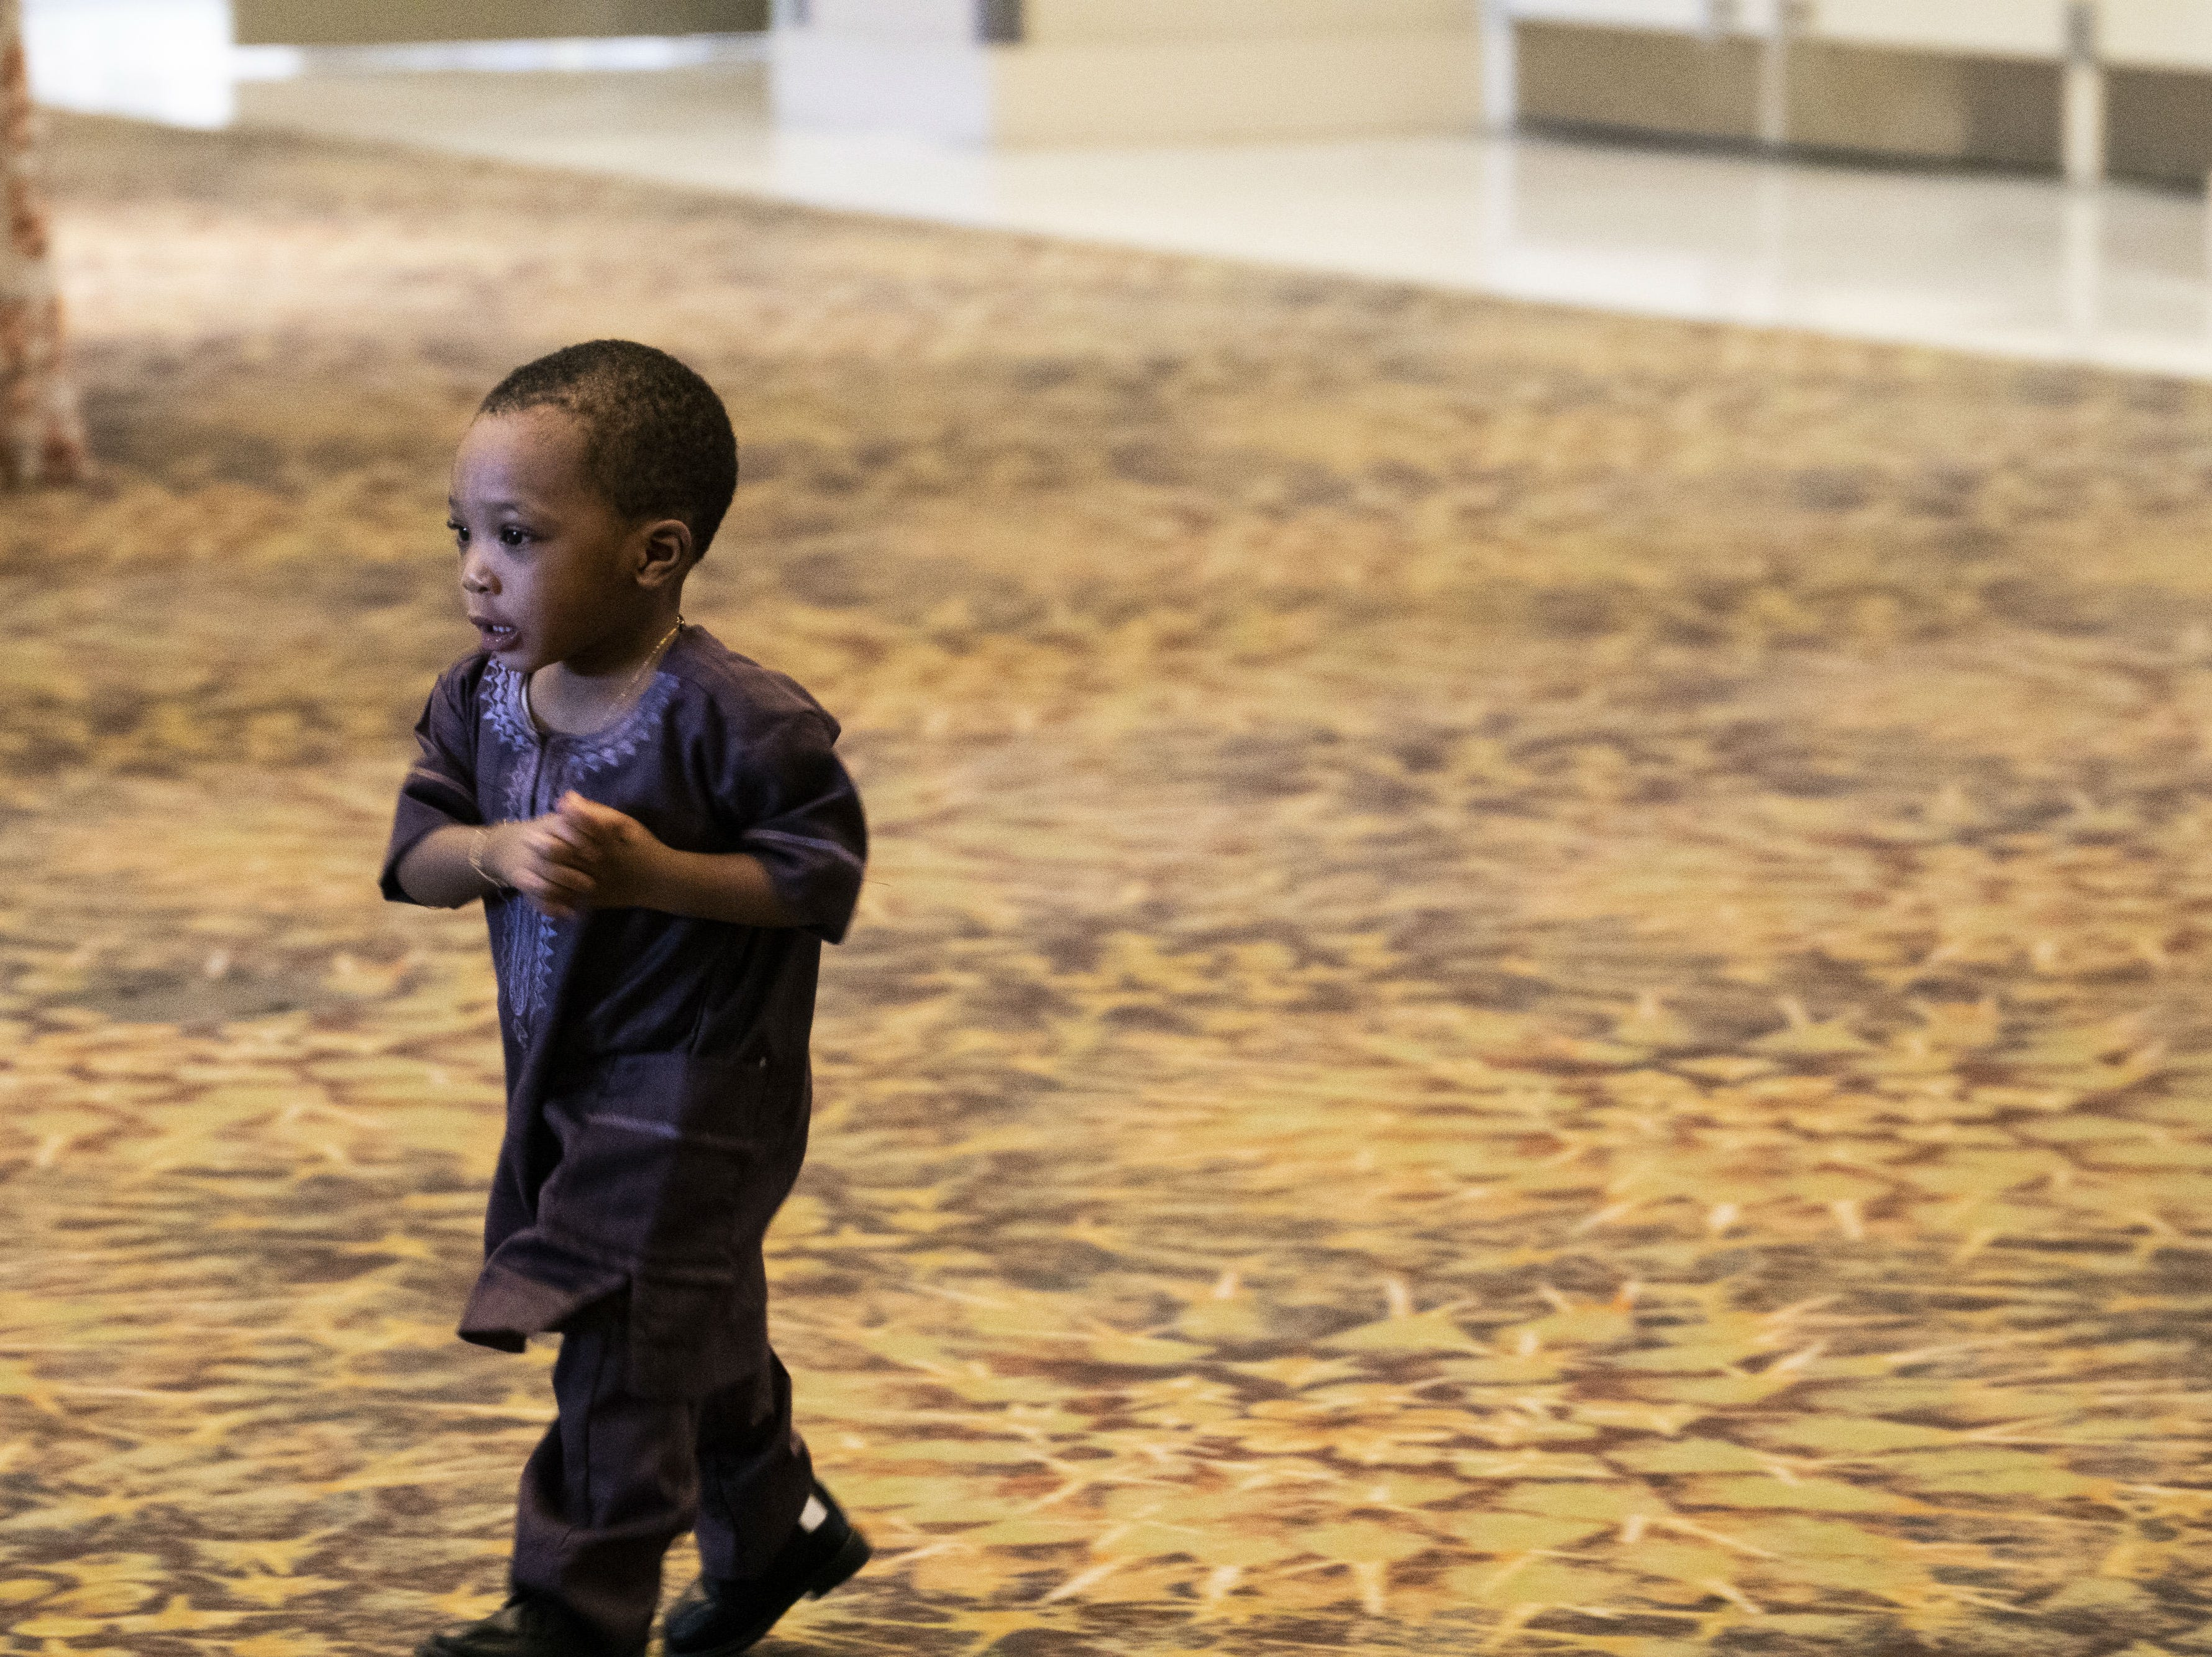 A boy runs around the convention center during an Eid celebration on Aug. 21, 2018, in Phoenix.